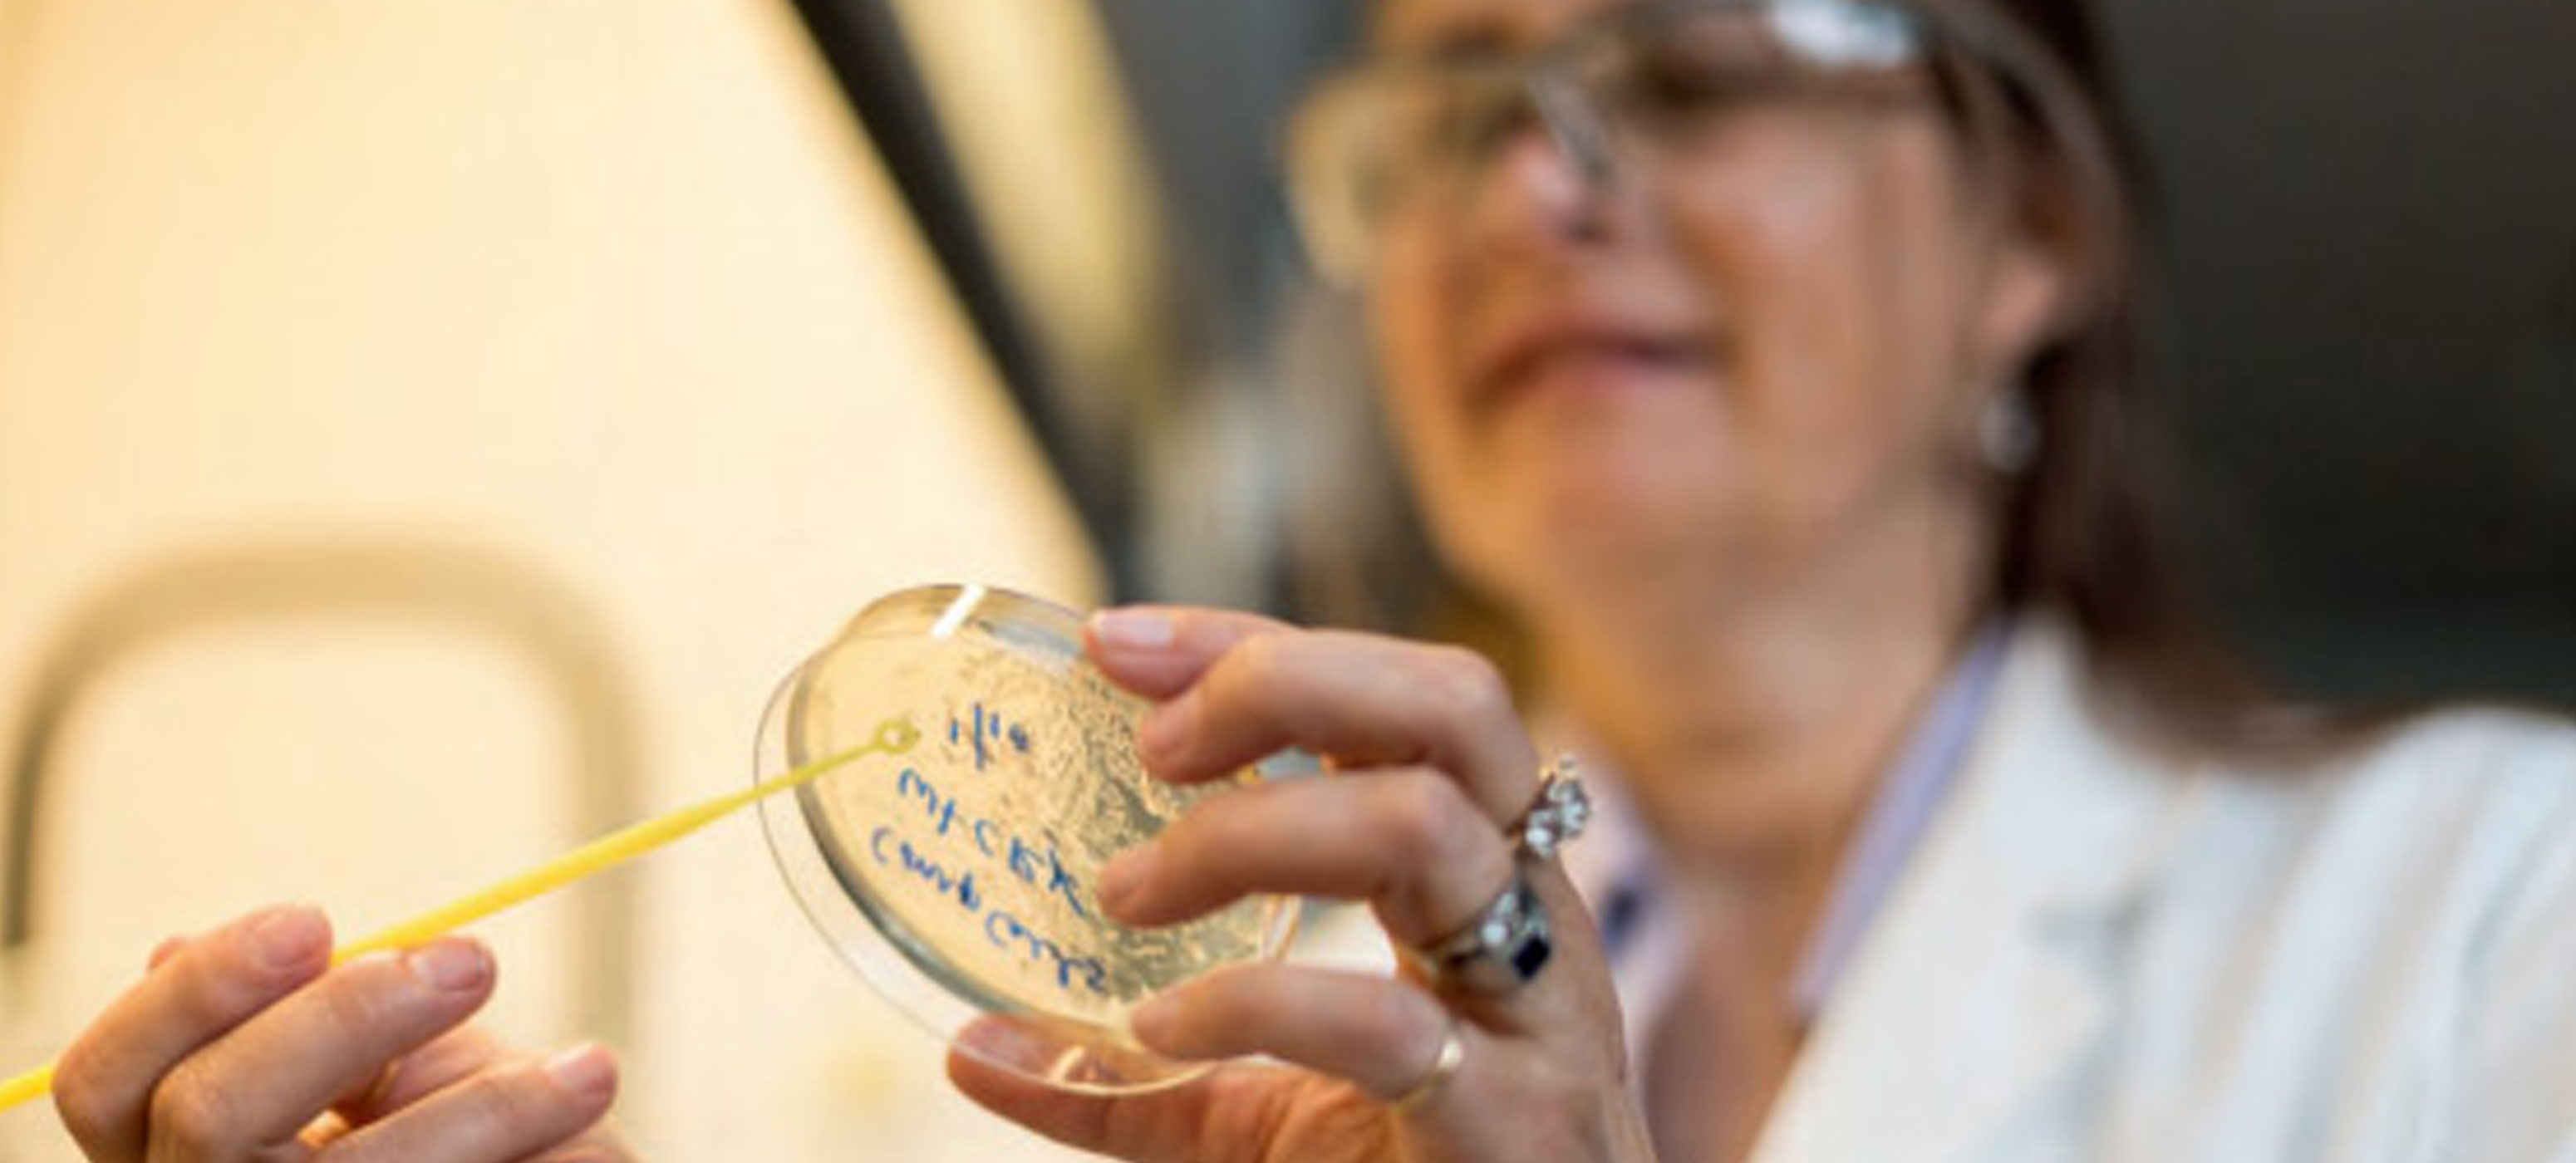 A lab assistant holding a petri dish